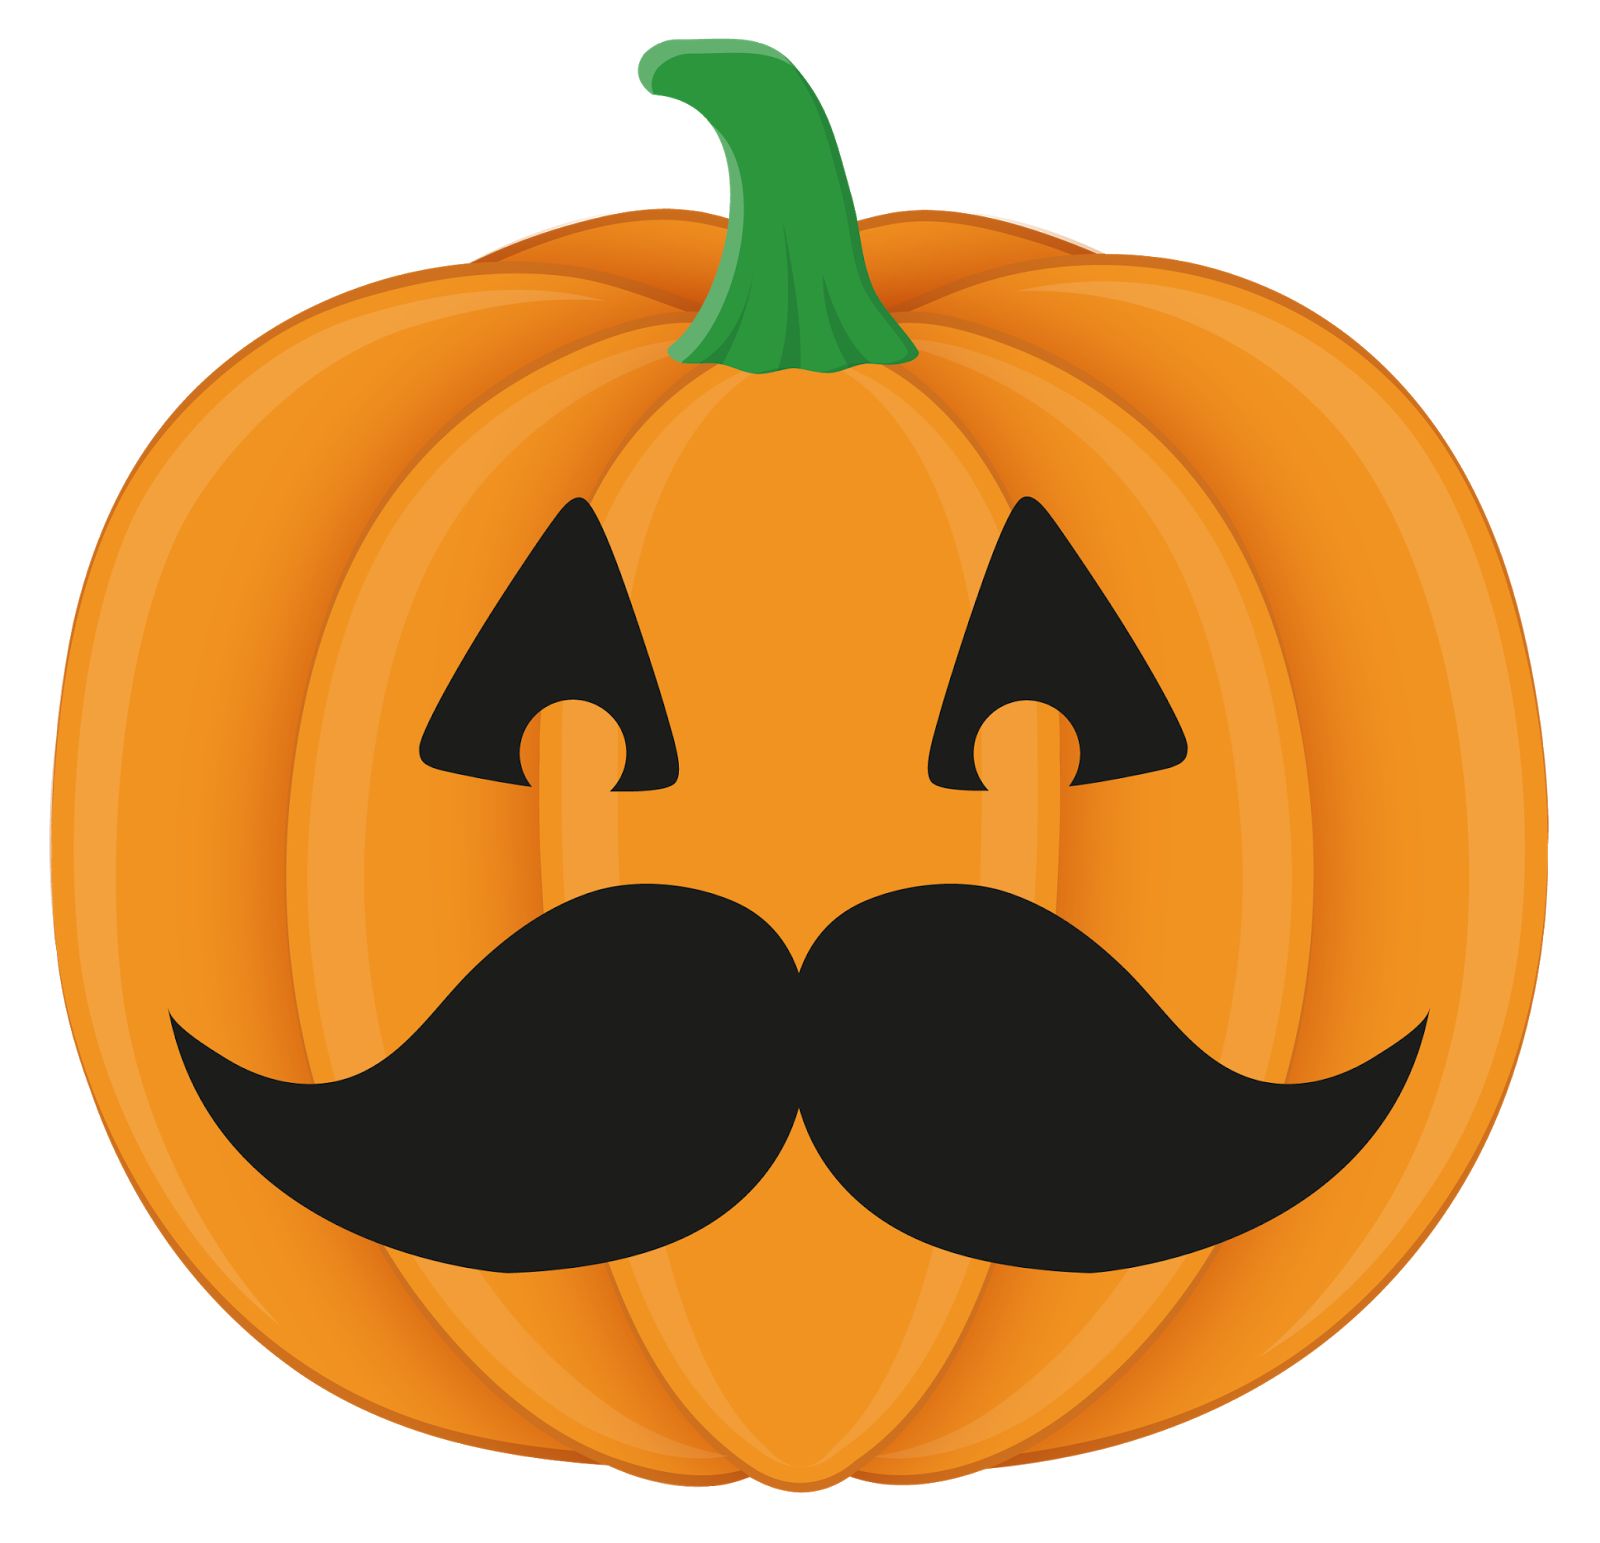 Mustache pumpkin clipart graphic black and white The Chalkboard Garden: October 2013 graphic black and white